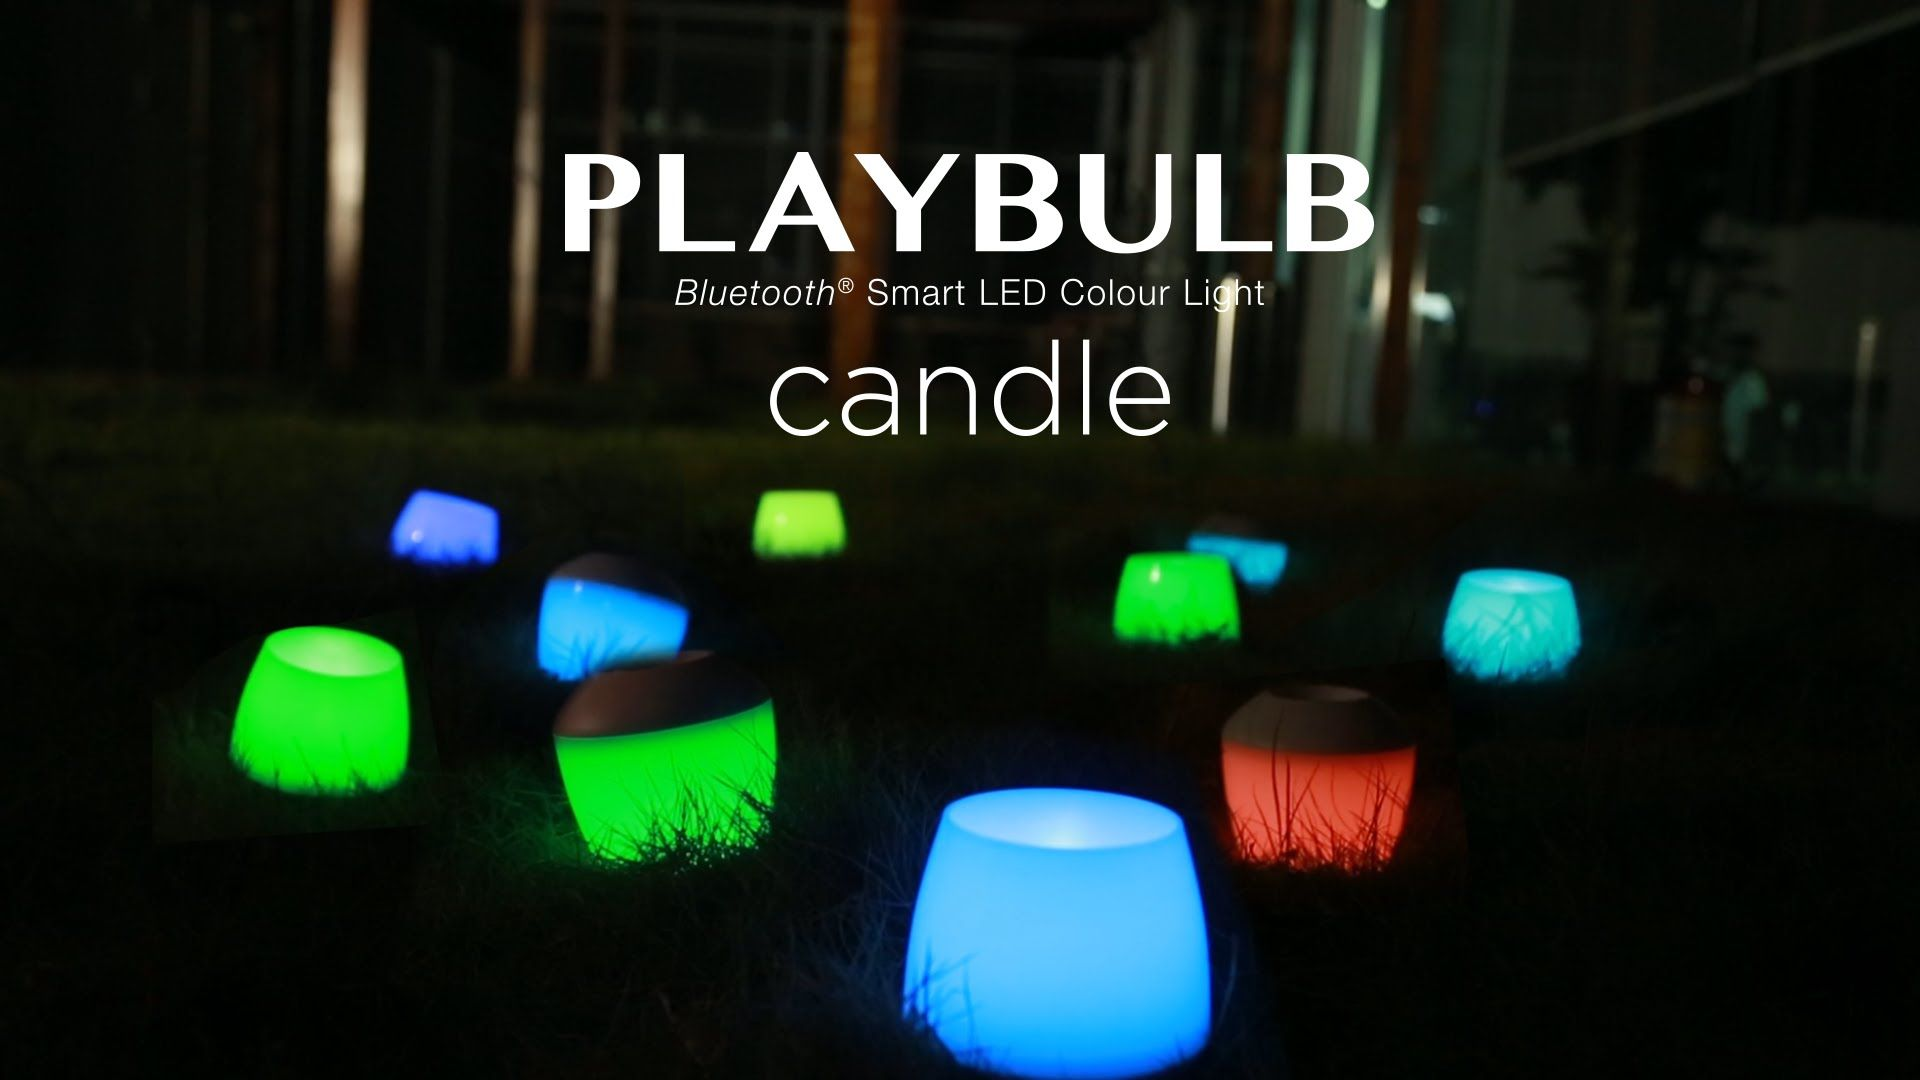 MIPOW Pack Of 3 PLAYBULB X Free APP Candle Smart Aromatherapy LED Candles  Light Color Flameless Multi Colors Http://s.click.aliexpress.com/e/Imy72jA6A